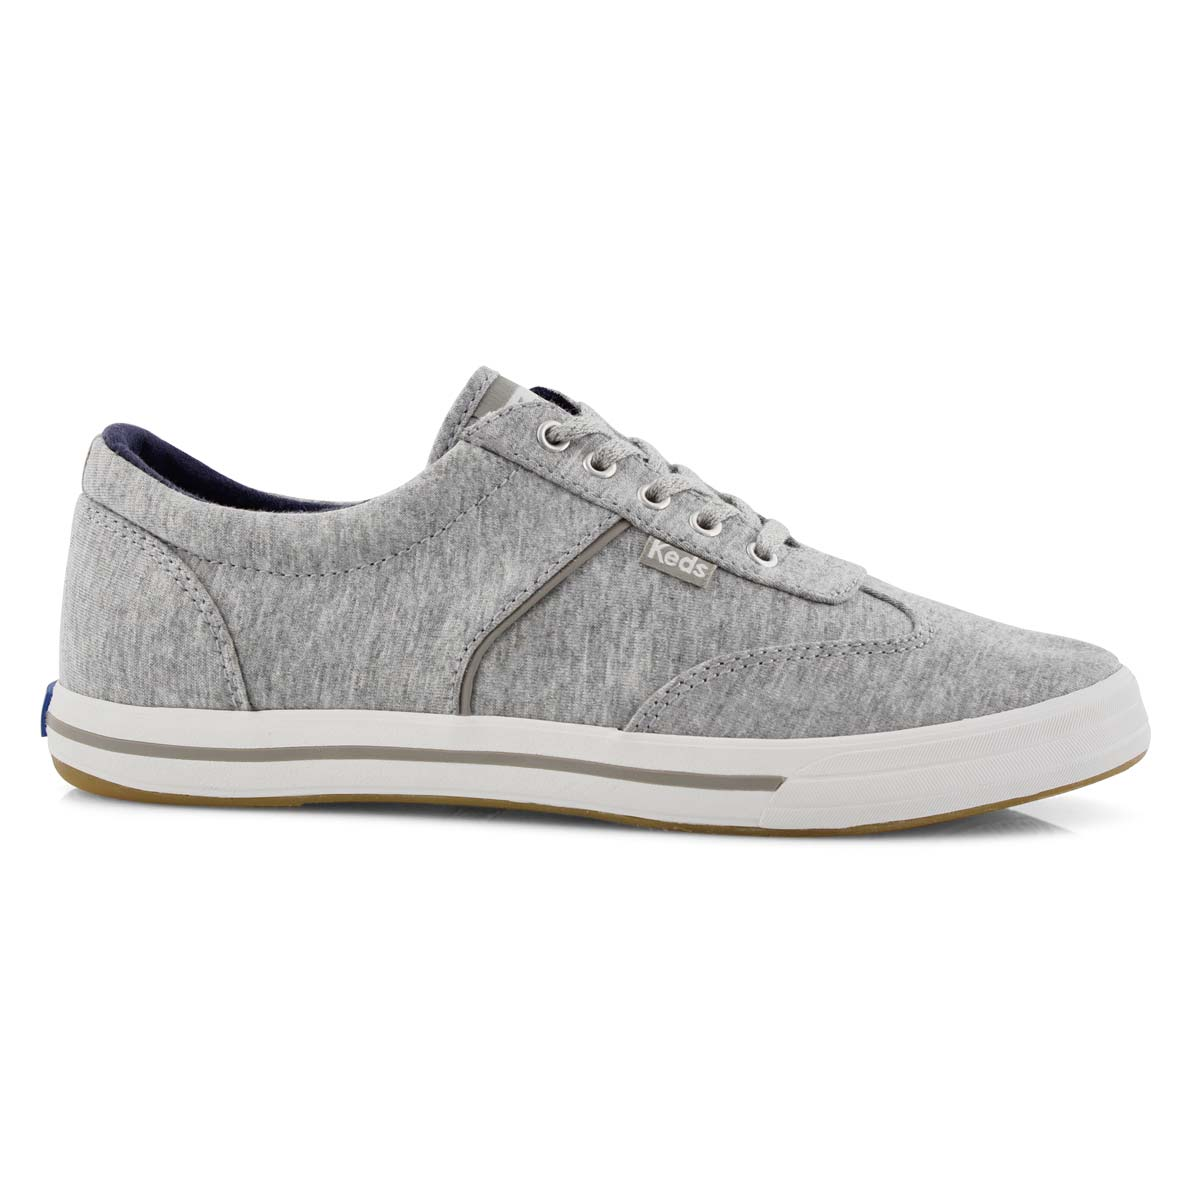 Lds Courty Jersey light gry sneaker